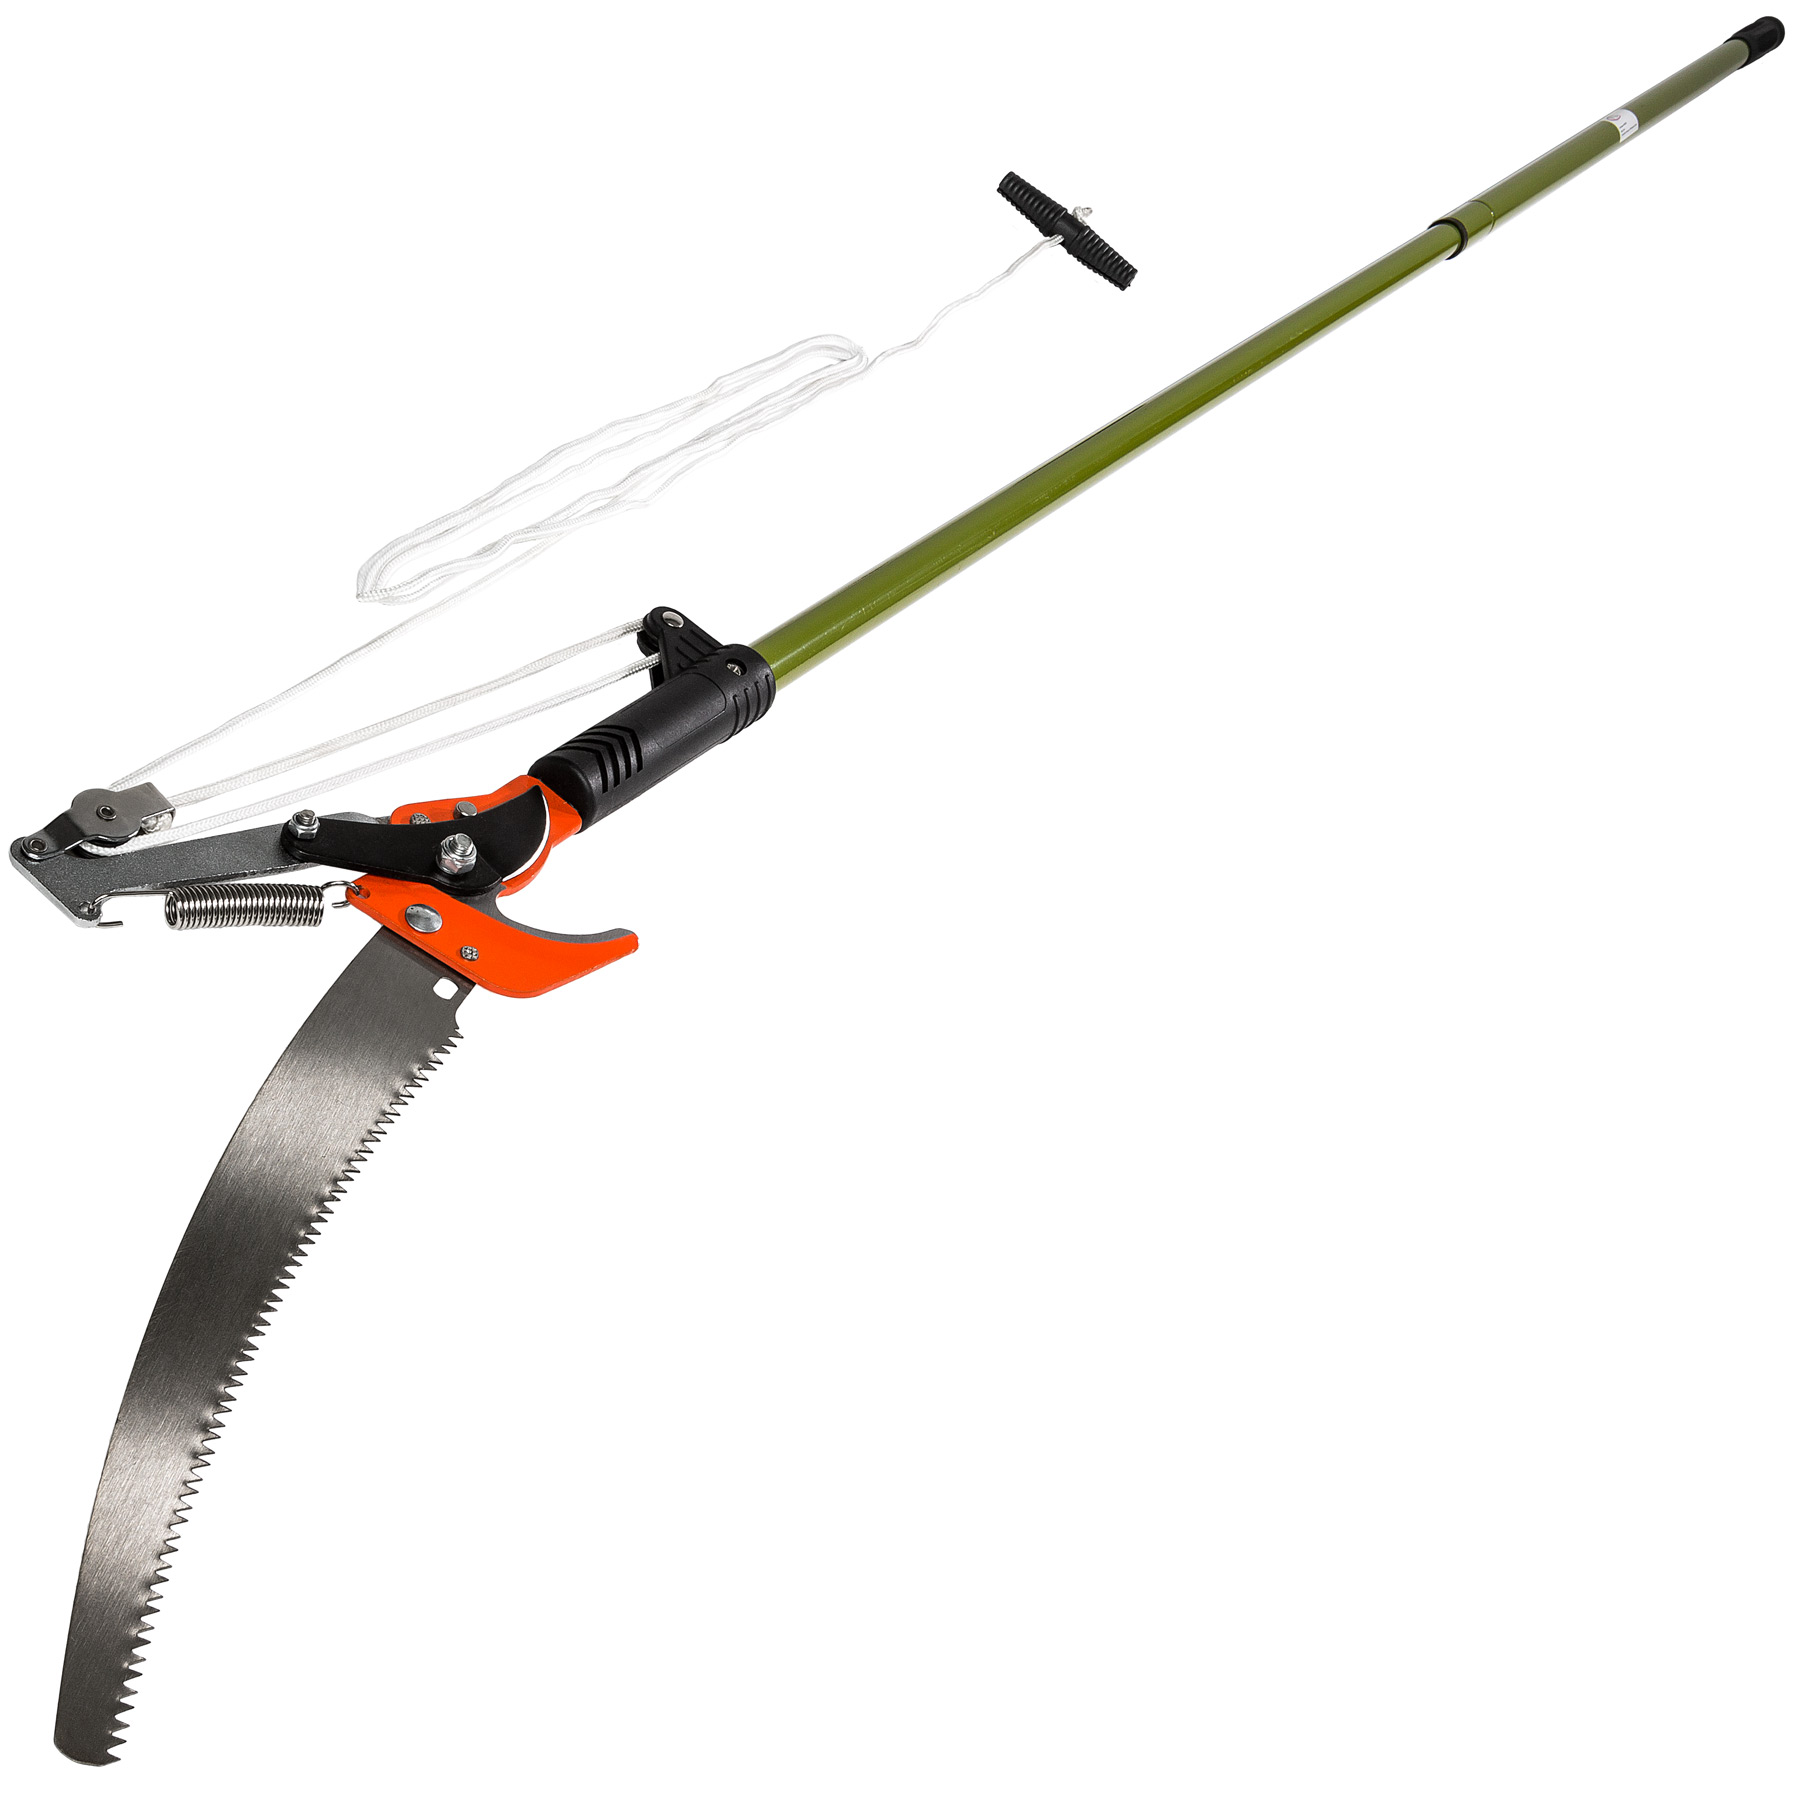 telescopic branch shears reach pruner extendable pruning tree saw garden tool ebay. Black Bedroom Furniture Sets. Home Design Ideas